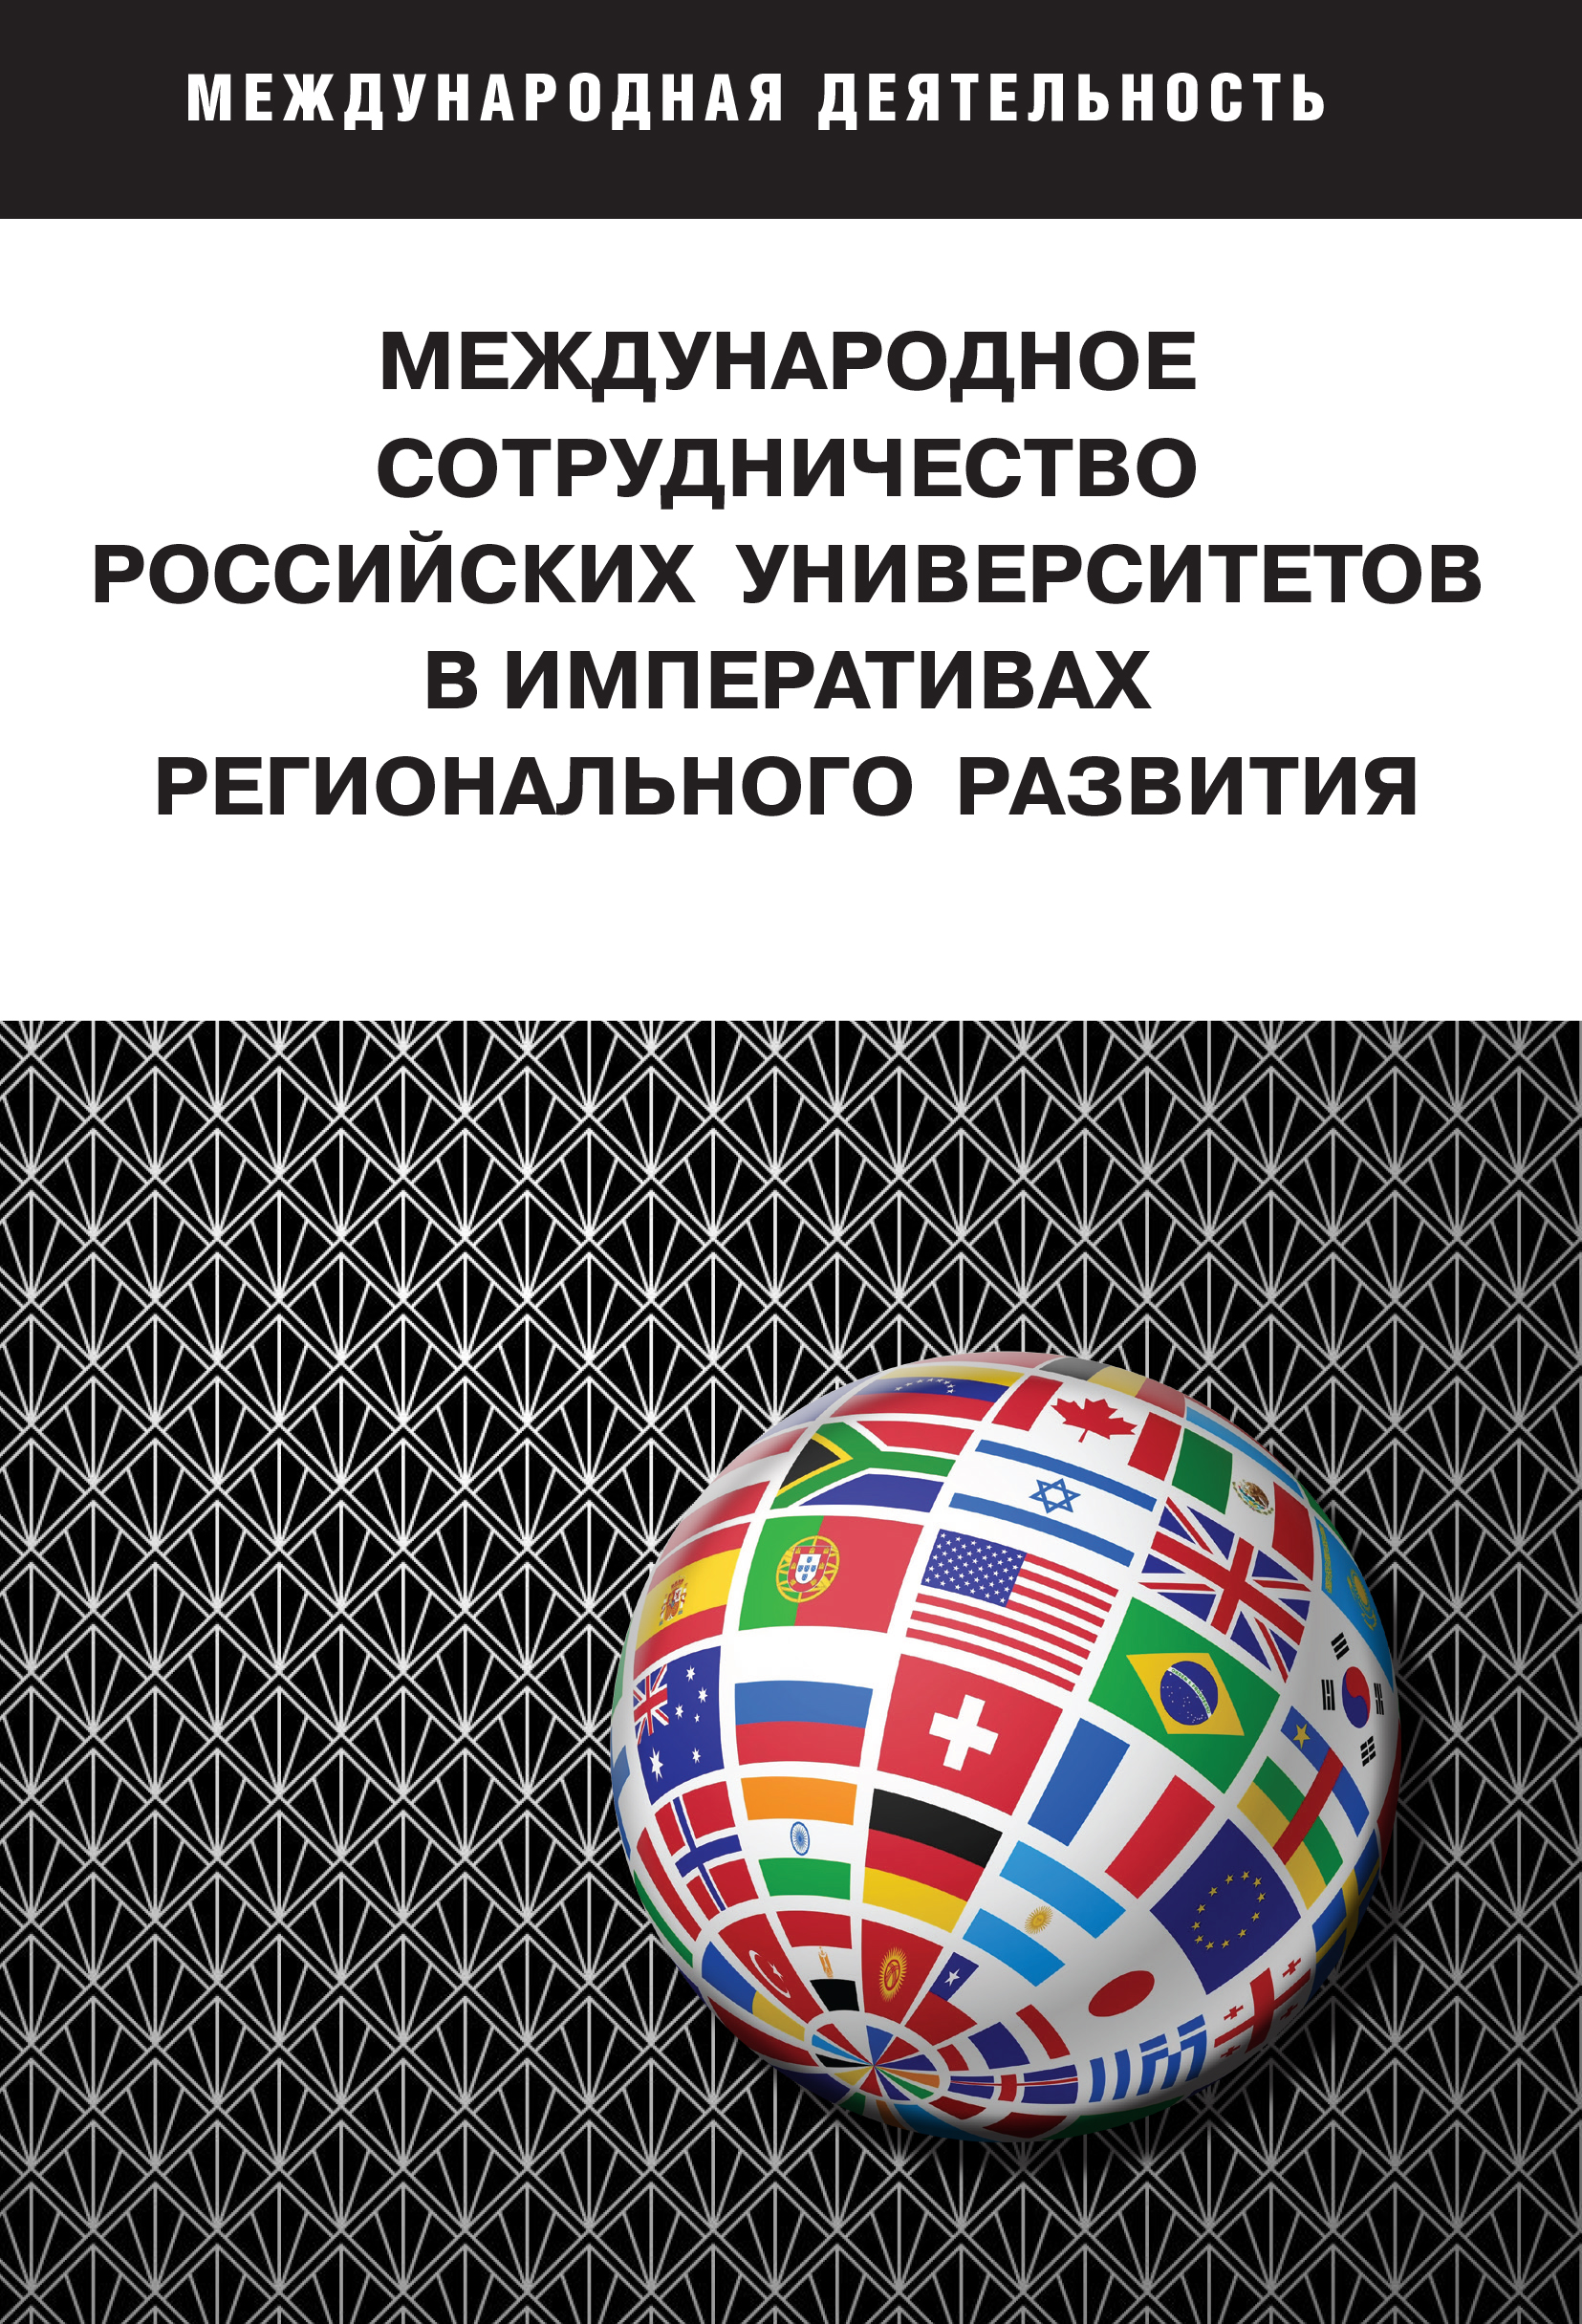 INTERNATIONAL COOPERATION OF RUSSIAN UNIVERSITIES IN THE IMPERATIVES OF REGIONAL DEVELOPMENT